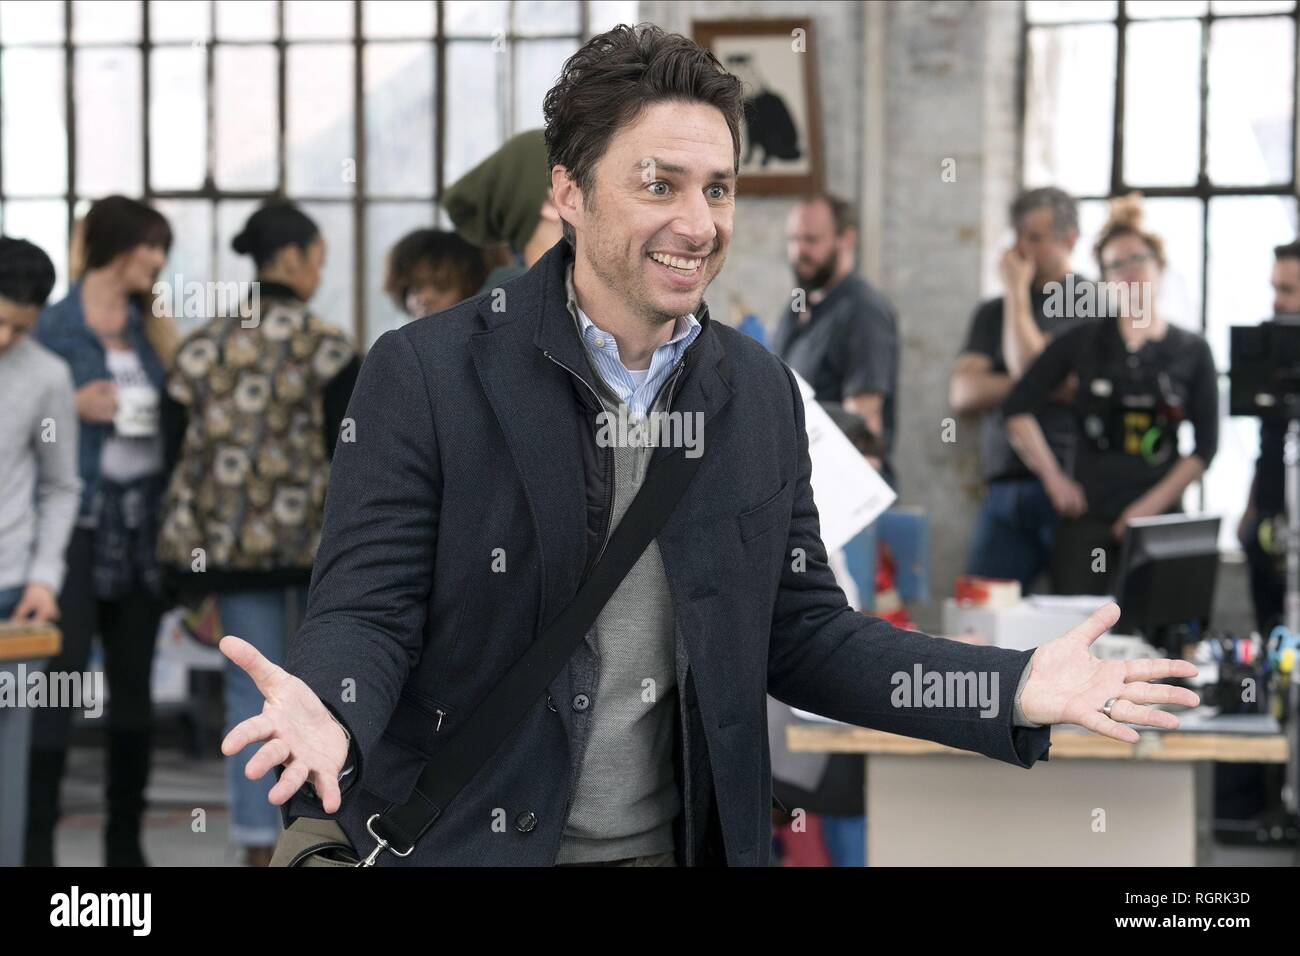 ZACH BRAFF ALEX INC. (2018) - Stock Image